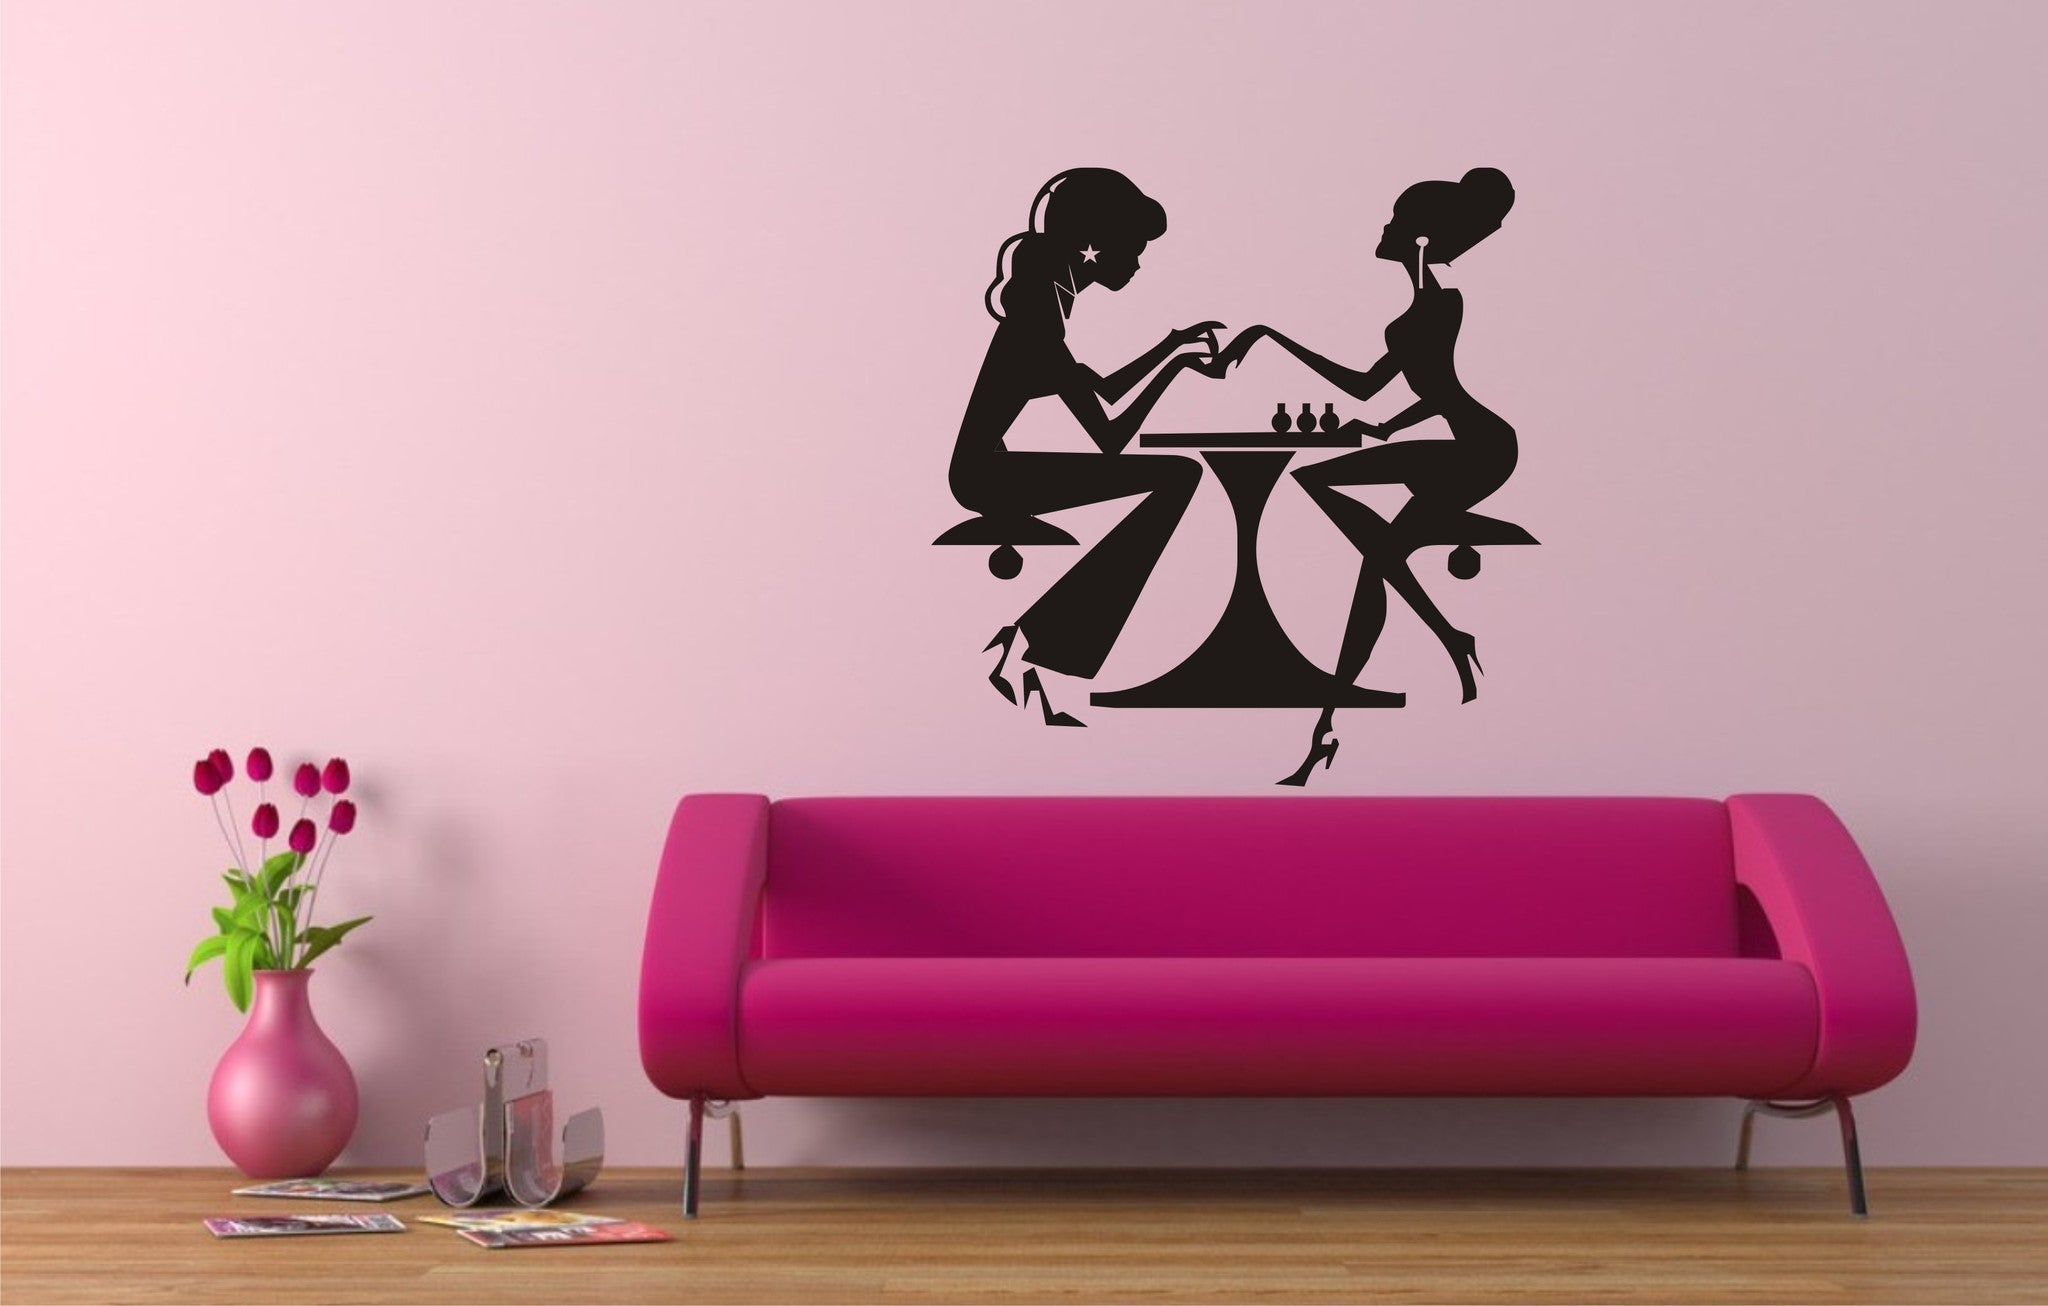 NAILS PEDICURE SALON Wall Art Sticker  stunning decals – Wall Art Shop